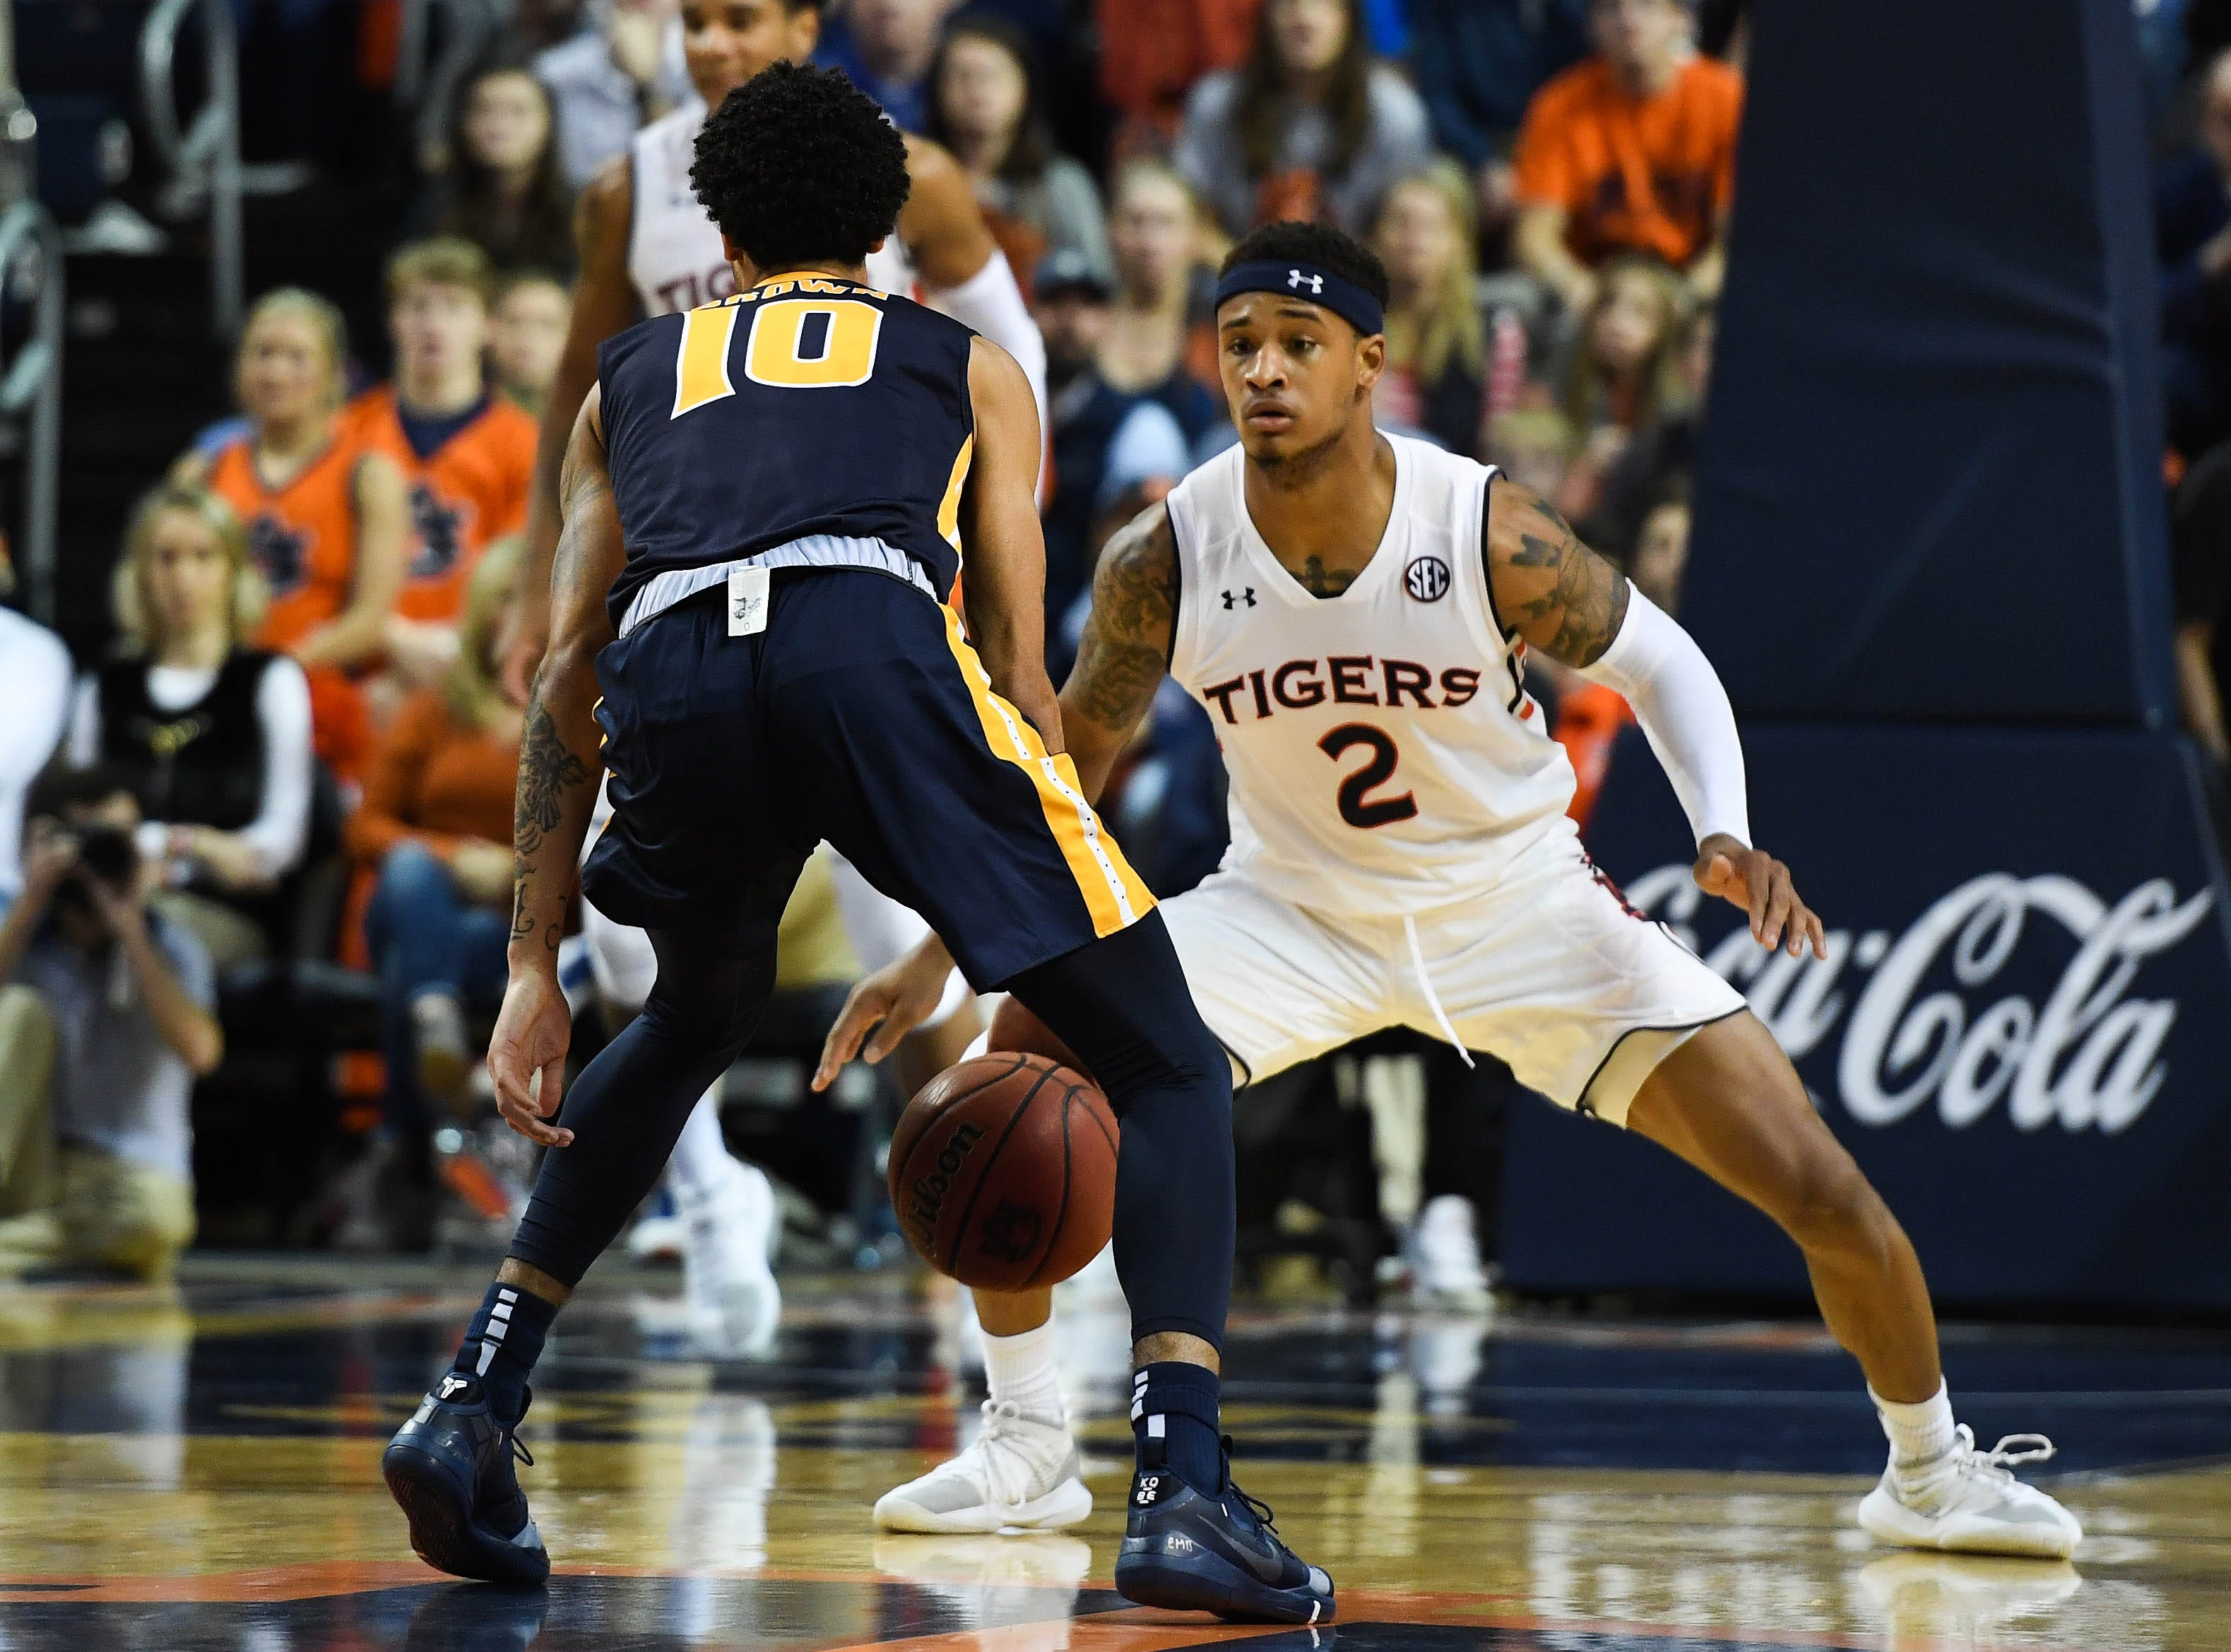 Dec 22, 2018; Auburn, AL, USA; Auburn Tigers guard Bryce Brown (2) defends Murray State Racers guard Tevin Brown (10) during the second half at Auburn Arena. Mandatory Credit: Shanna Lockwood-USA TODAY Sports